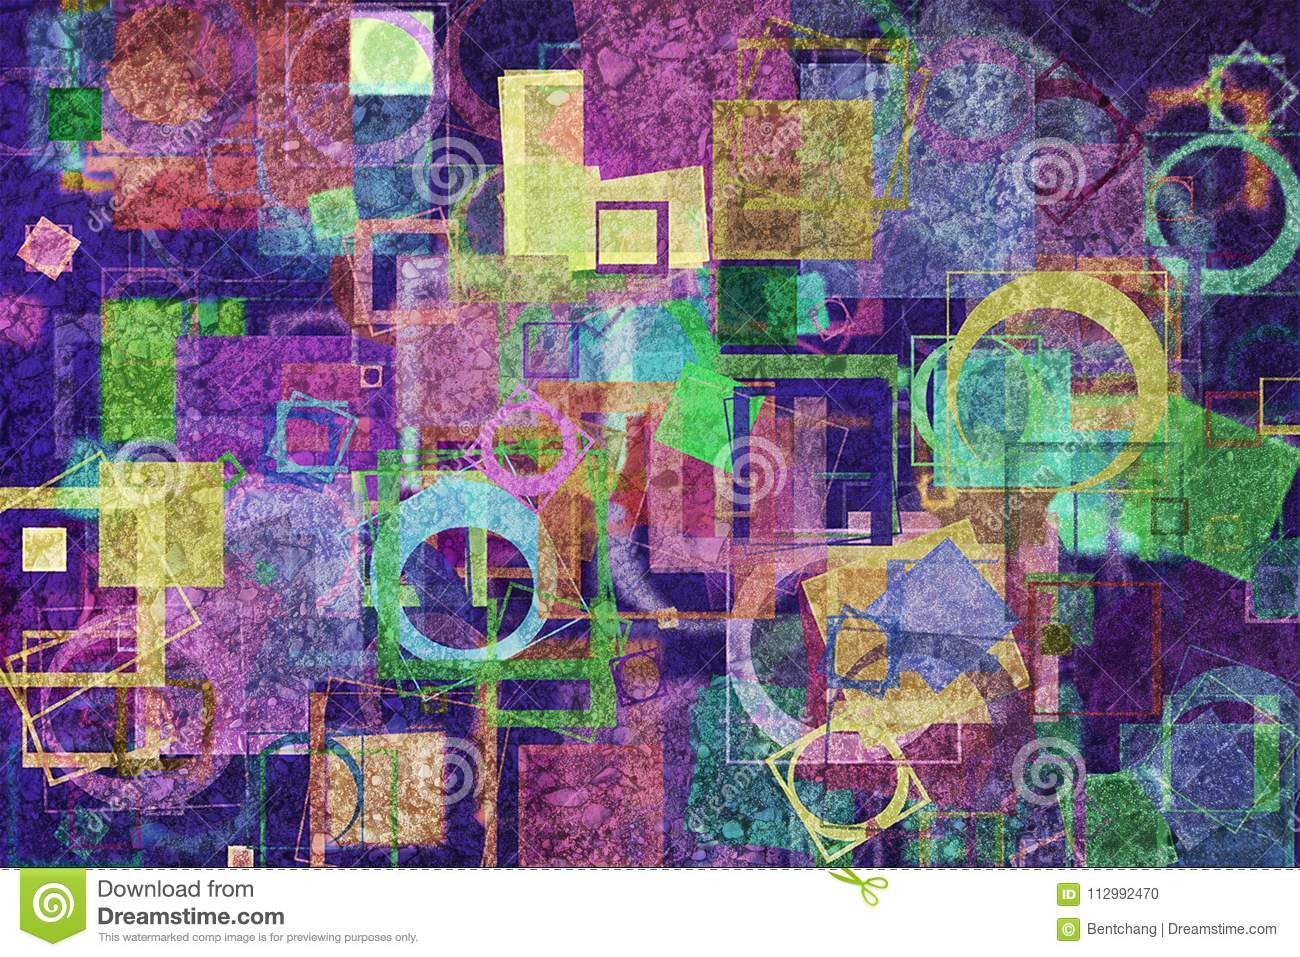 Abstract pattern shape, for graphic design, artistic. Details, color, repeat & generative.